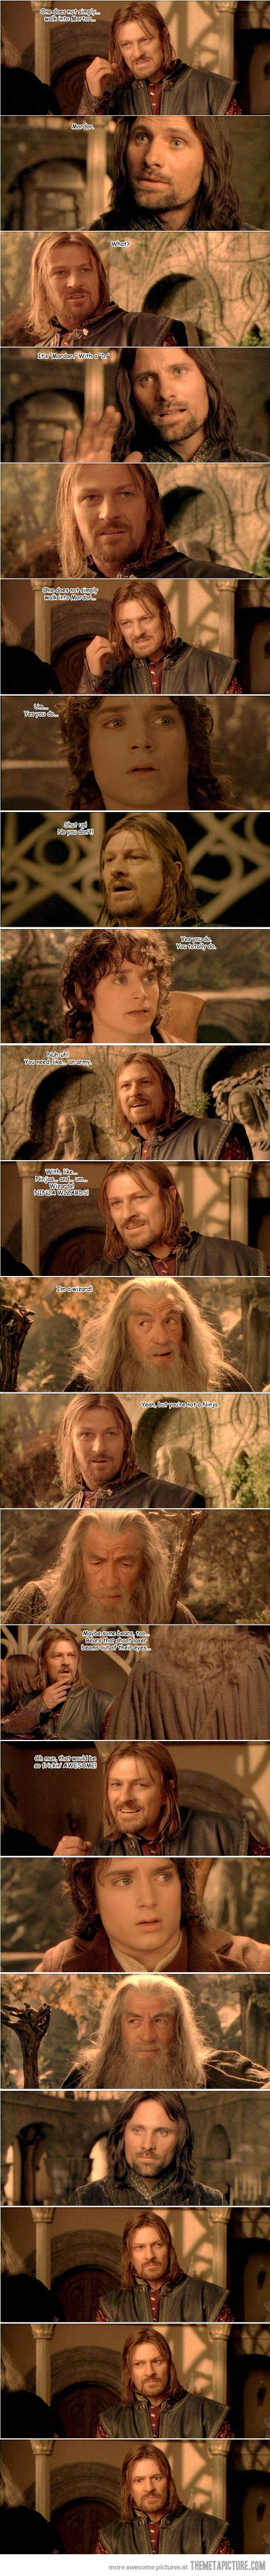 """The feature length version of the """"One does not simply walk into Mordor"""" meme."""